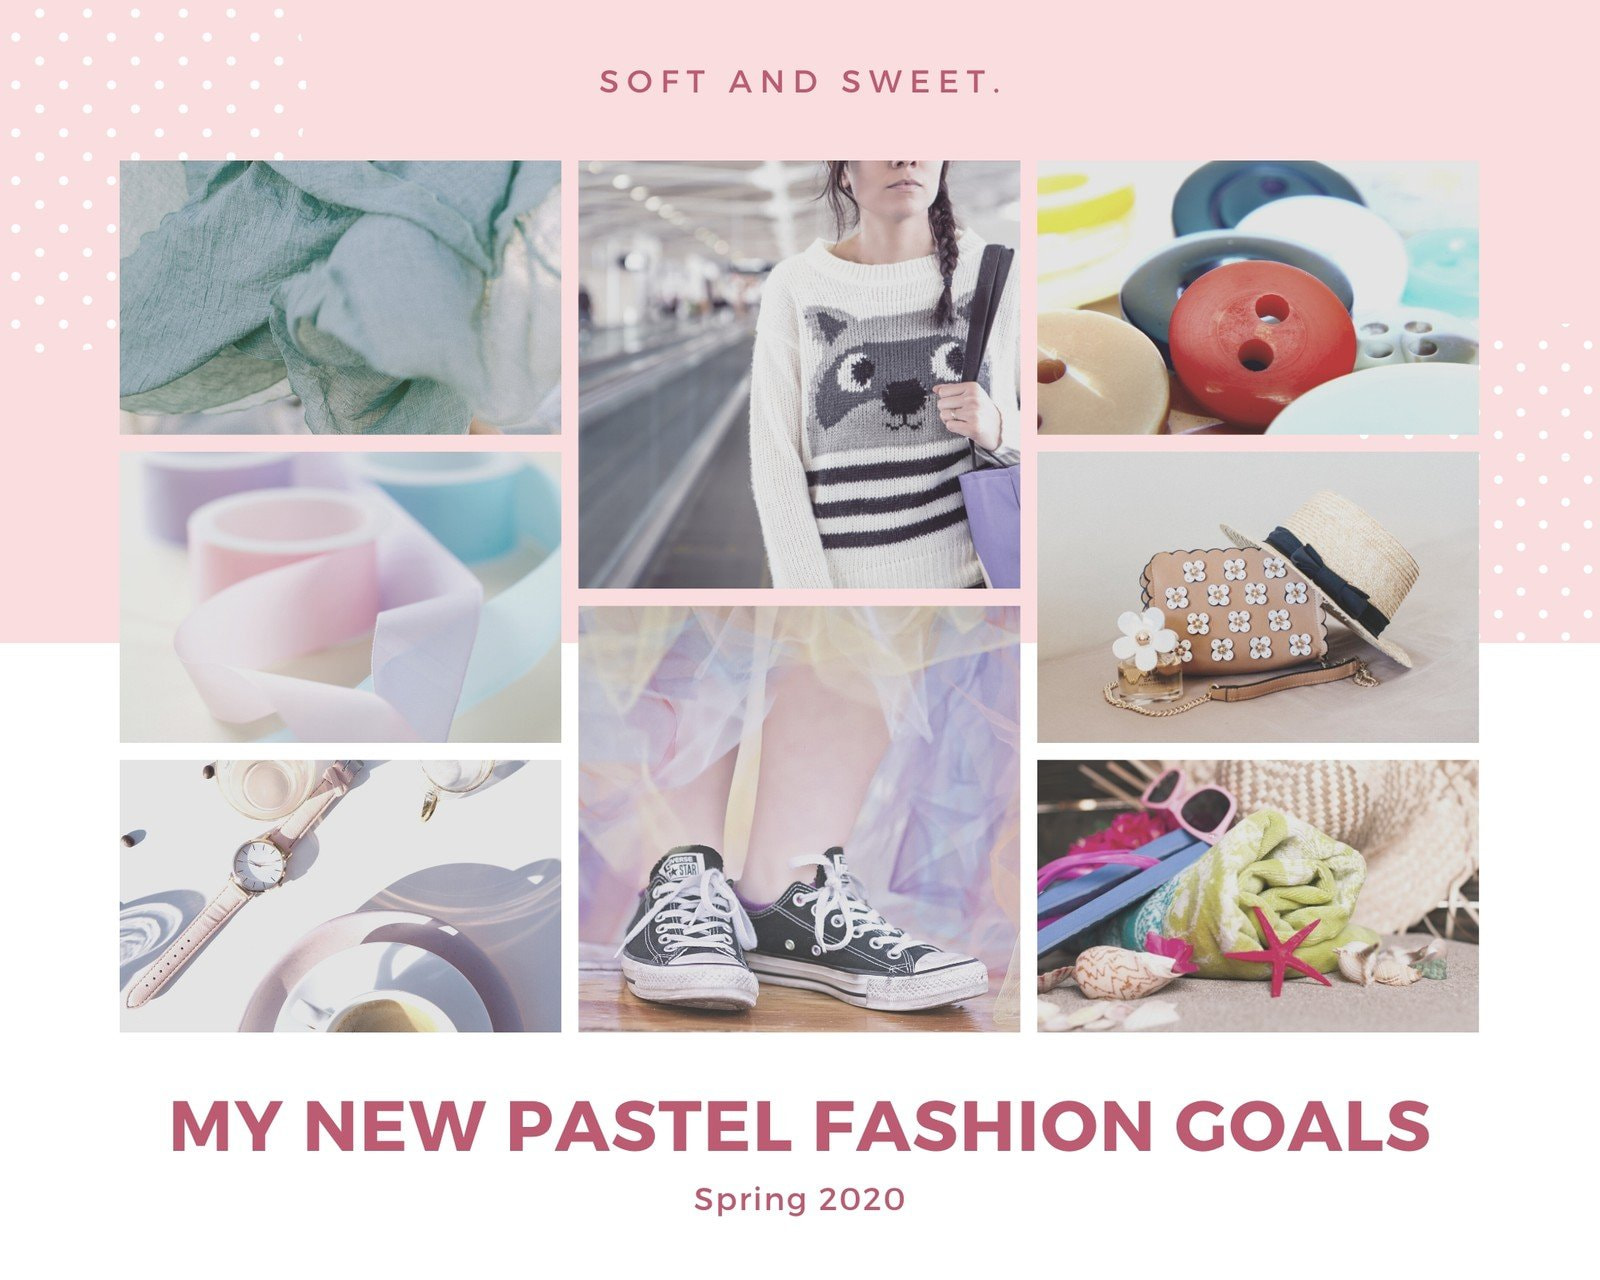 Pastel Fashion Photo Grid Mood Board Photo Collage